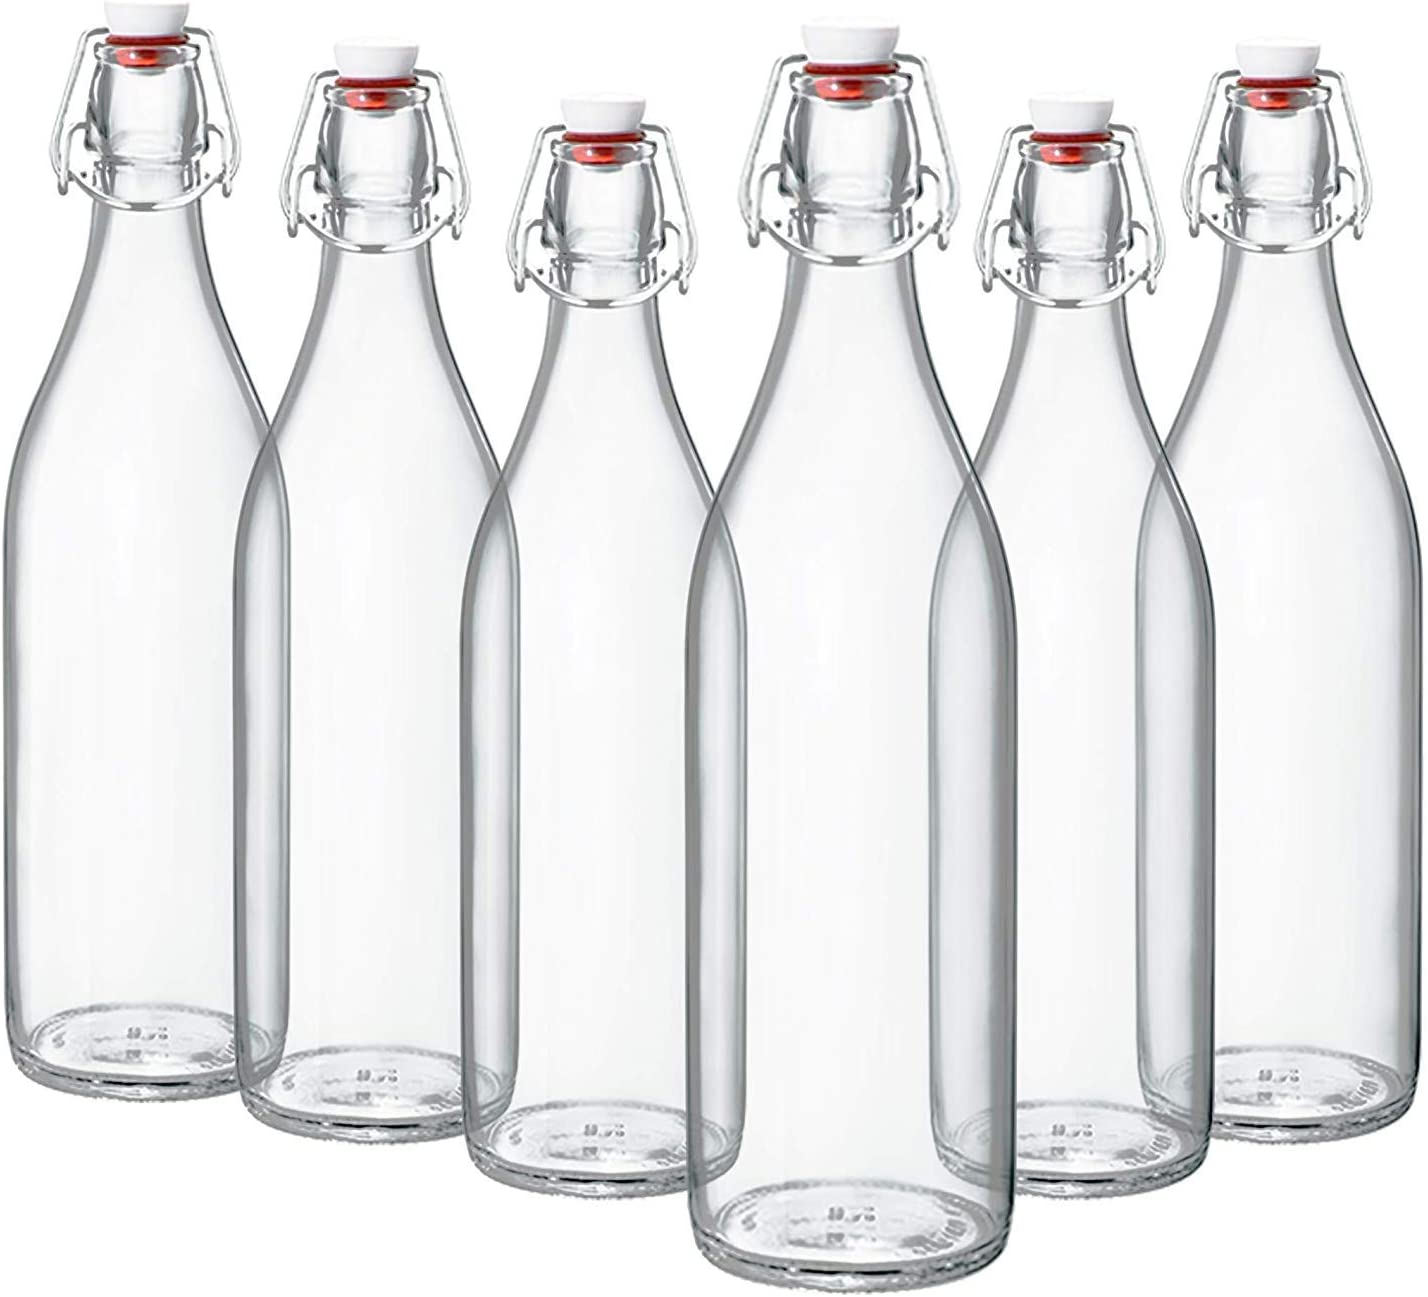 Giara Swing Top Bottles 33 ¾ Ounce/1 Liter (6 Pack) ROUND Clear Glass Grolsch Flip Top Bottle With Stopper, for Beverages, Smoothies, Kefir, Beer, Soda, Juicing, Kombucha, Water, Milk, Oil and Vinegar